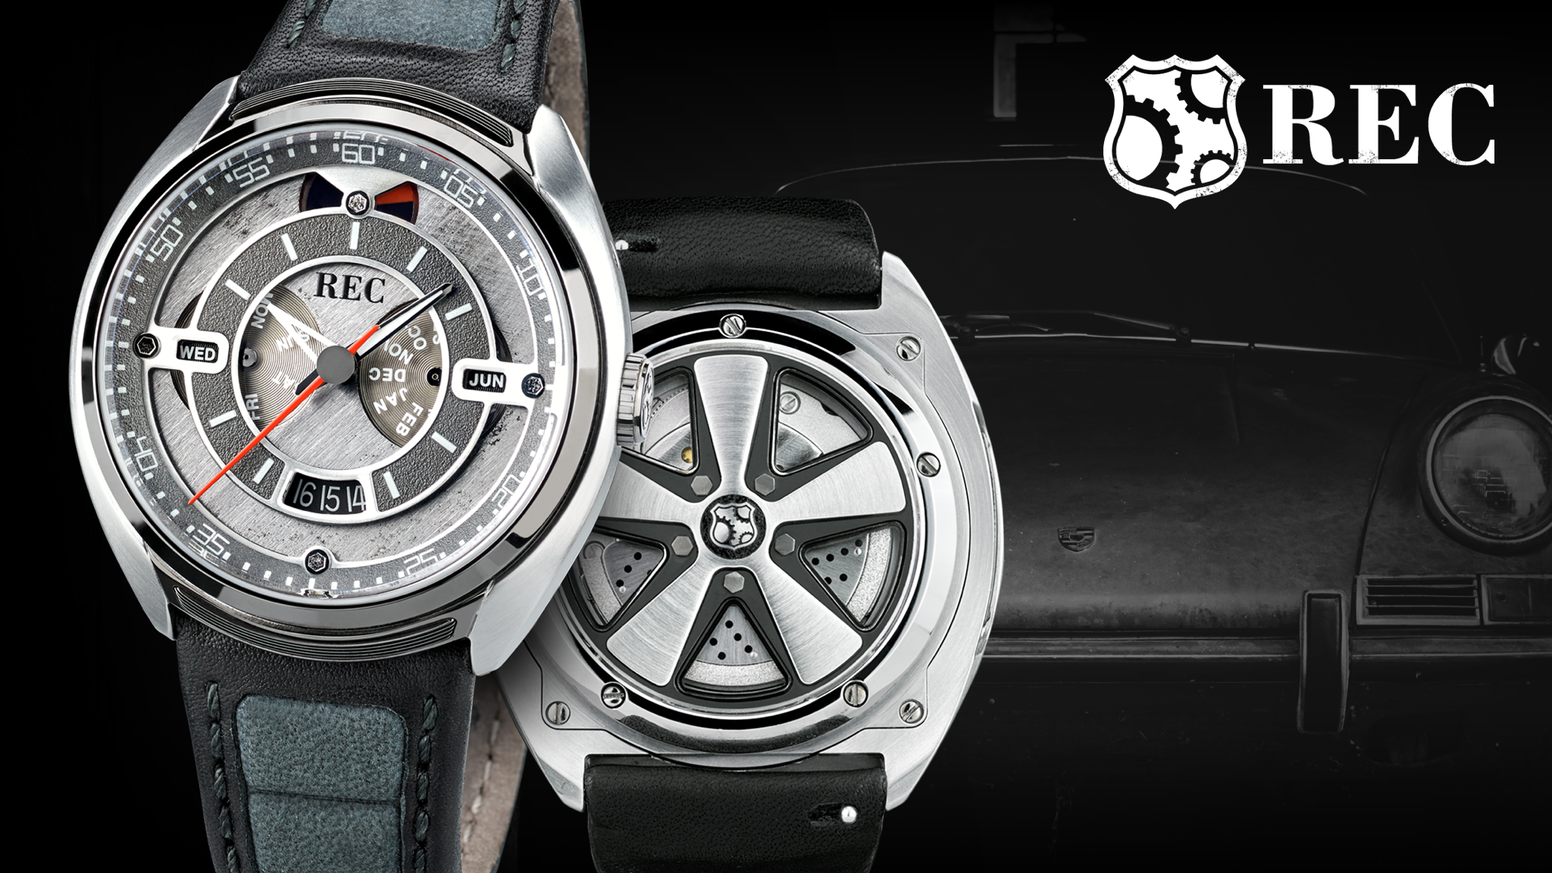 An Automatic Watch Collection Made From & Inspired By More Than Half a Century of the Legendary Porsche 911!